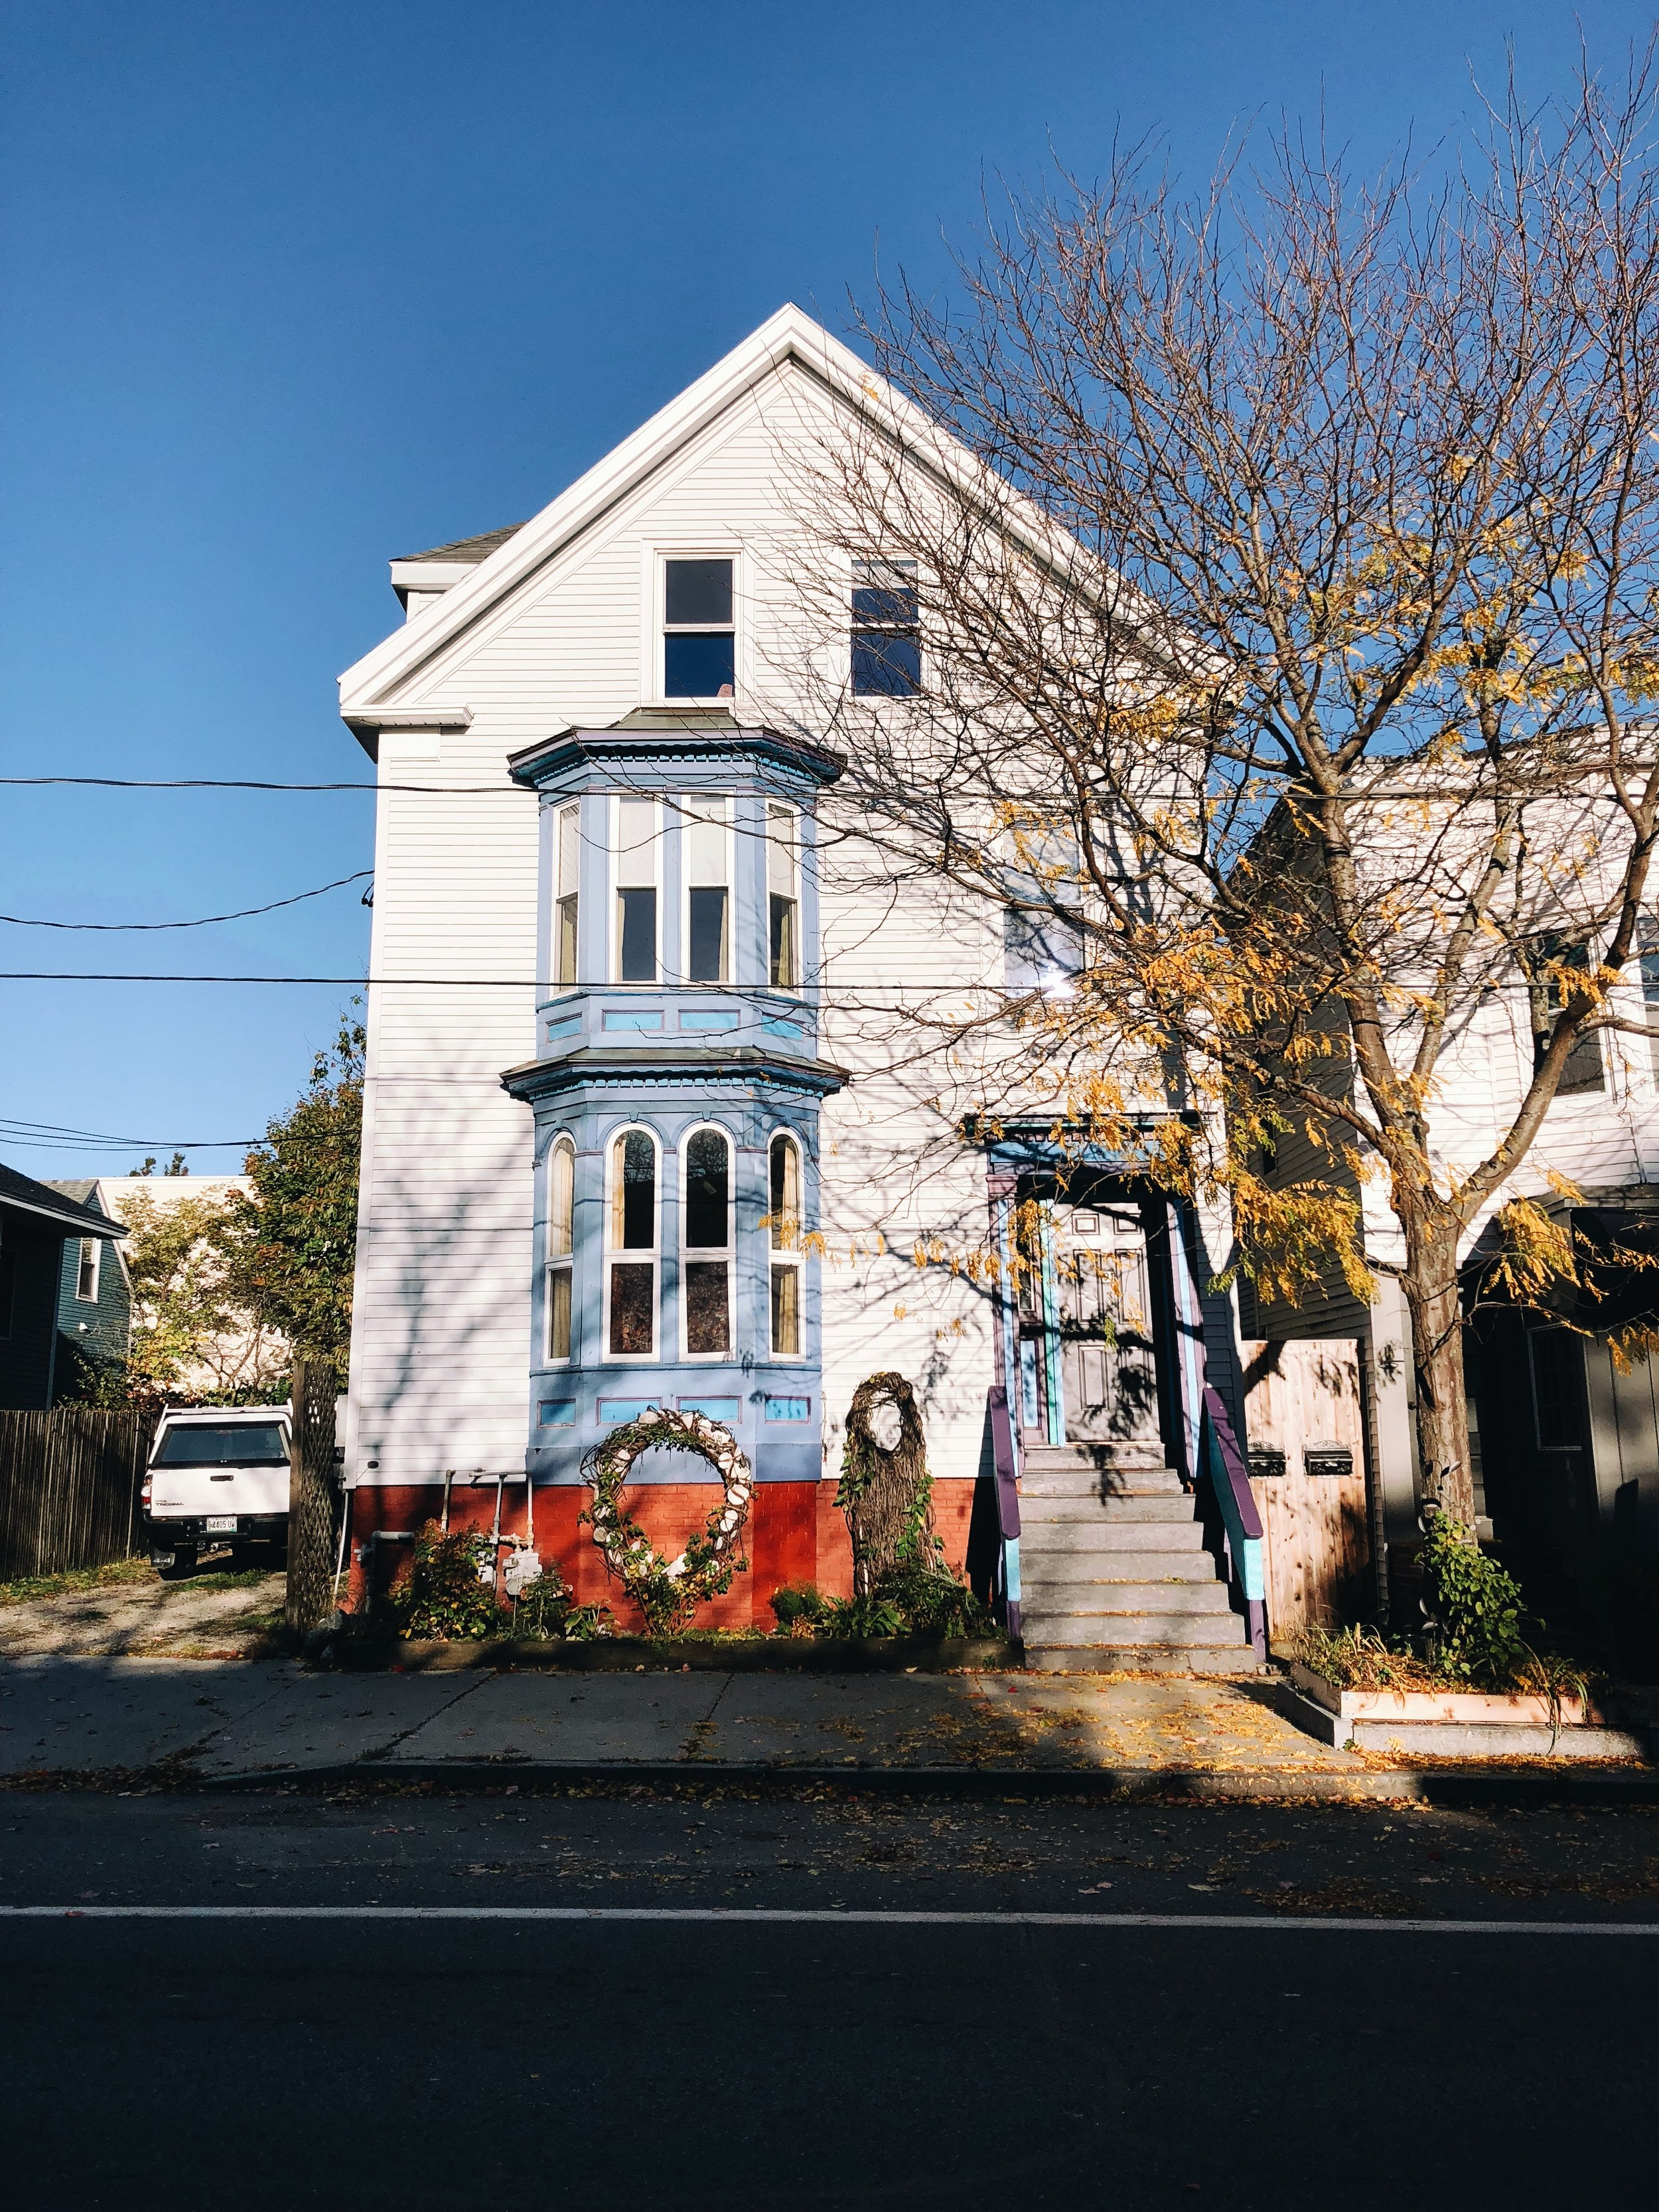 Walking through Munjoy Hill, a neighborhood in east Portland